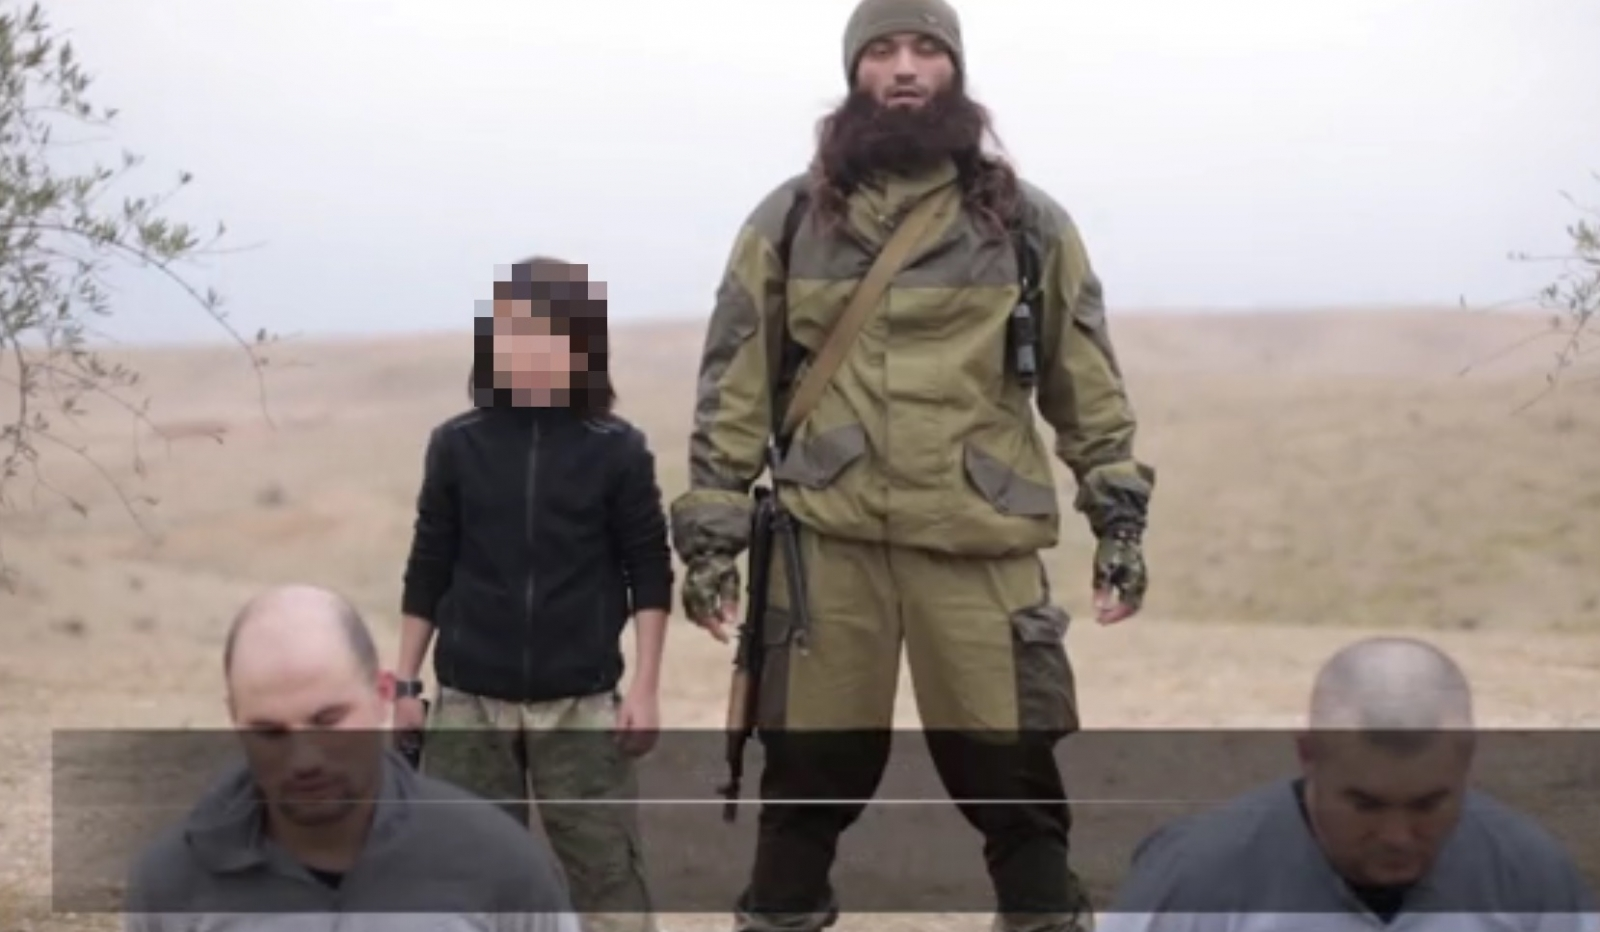 Isis most shocking execution video: Small boy executes two 'Russian spies' with pistol